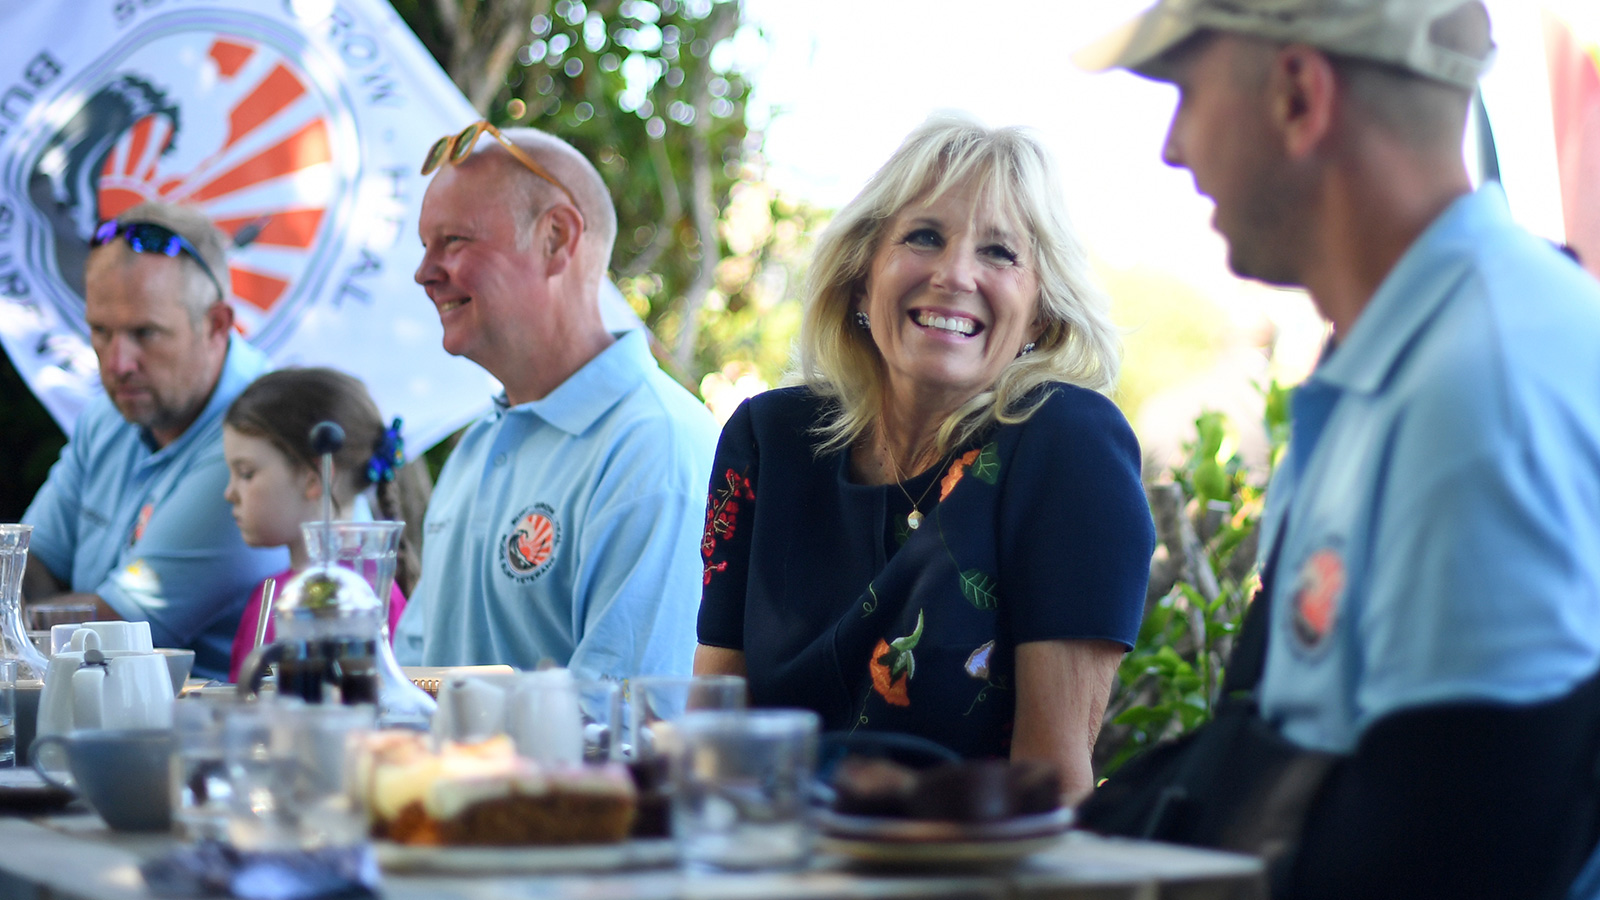 'I'm a partner on this journey': Jill Biden on how she sees her role as first lady during debut foreign trip